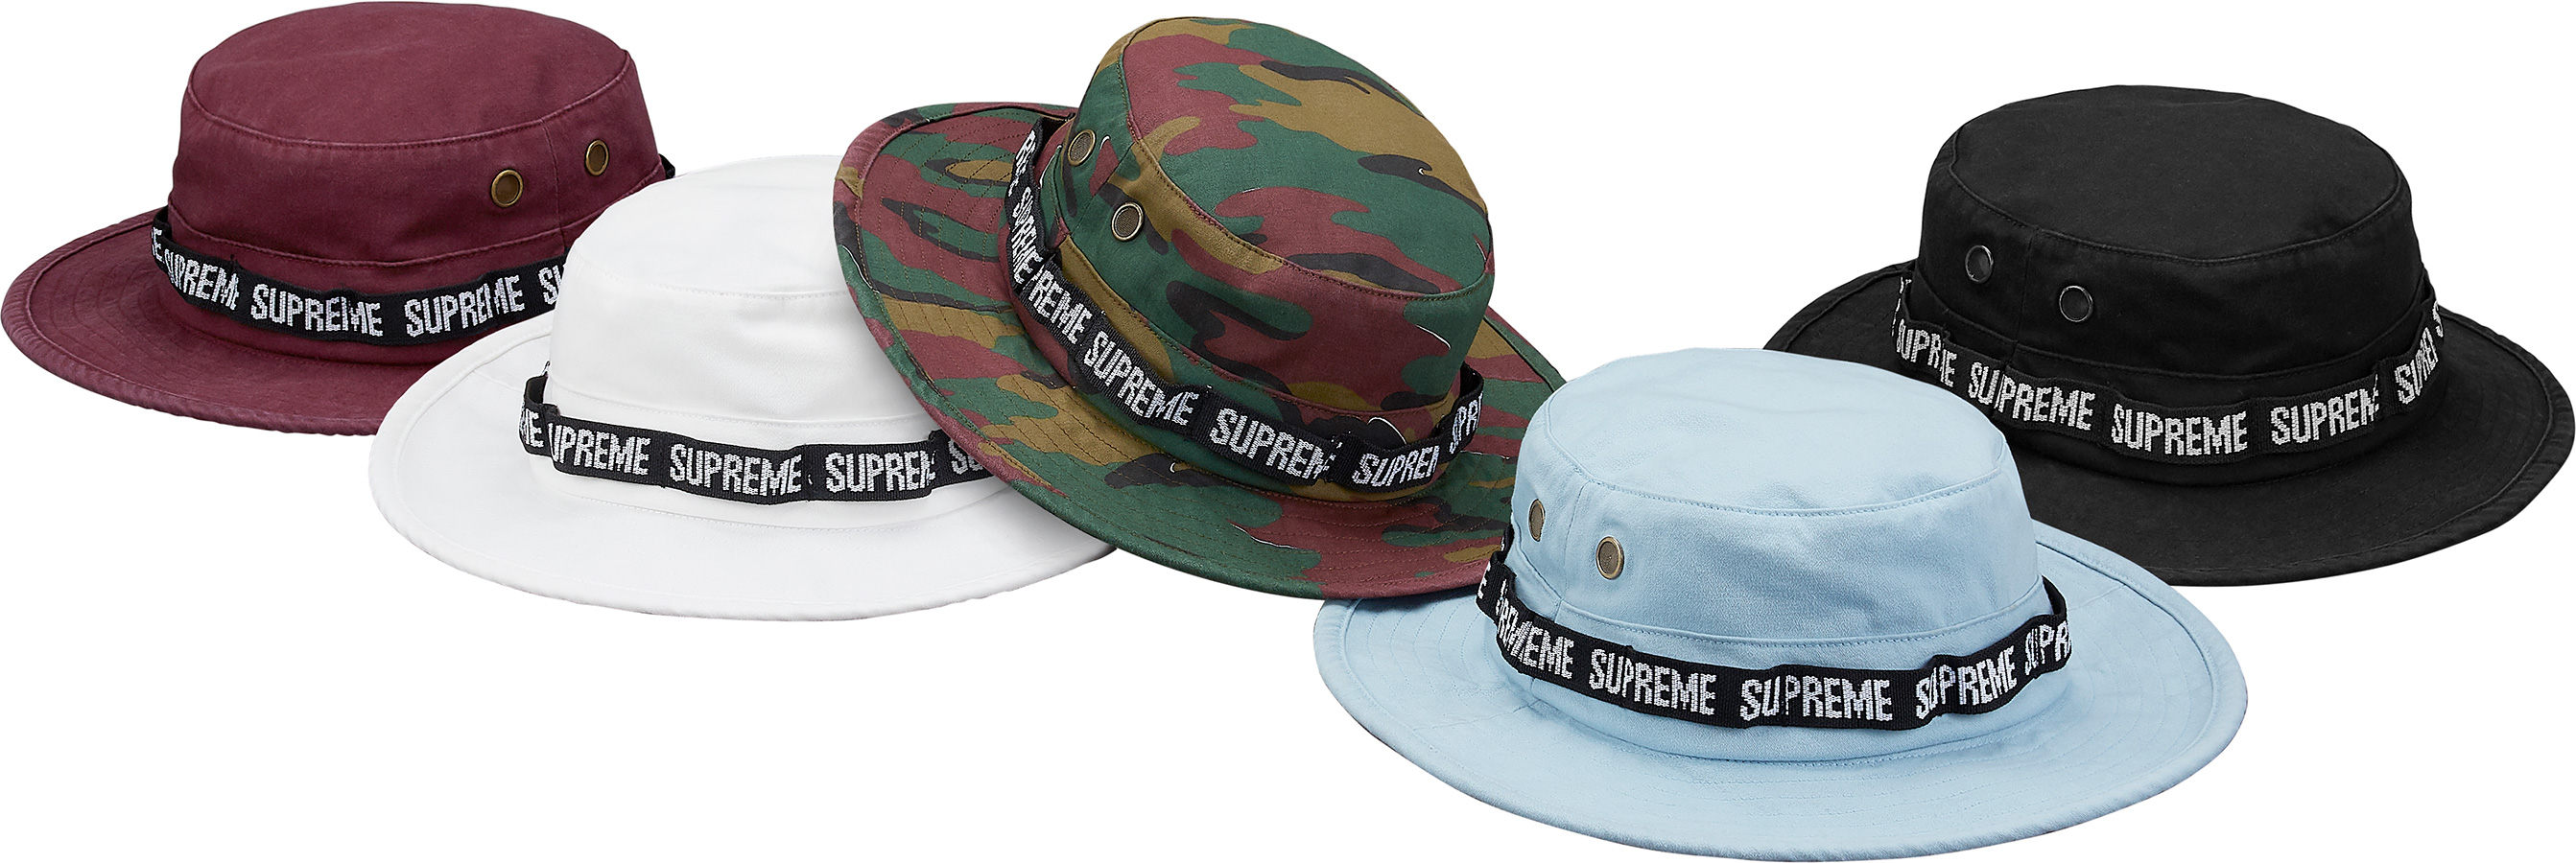 supreme-18ss-spring-summer-military-boonie